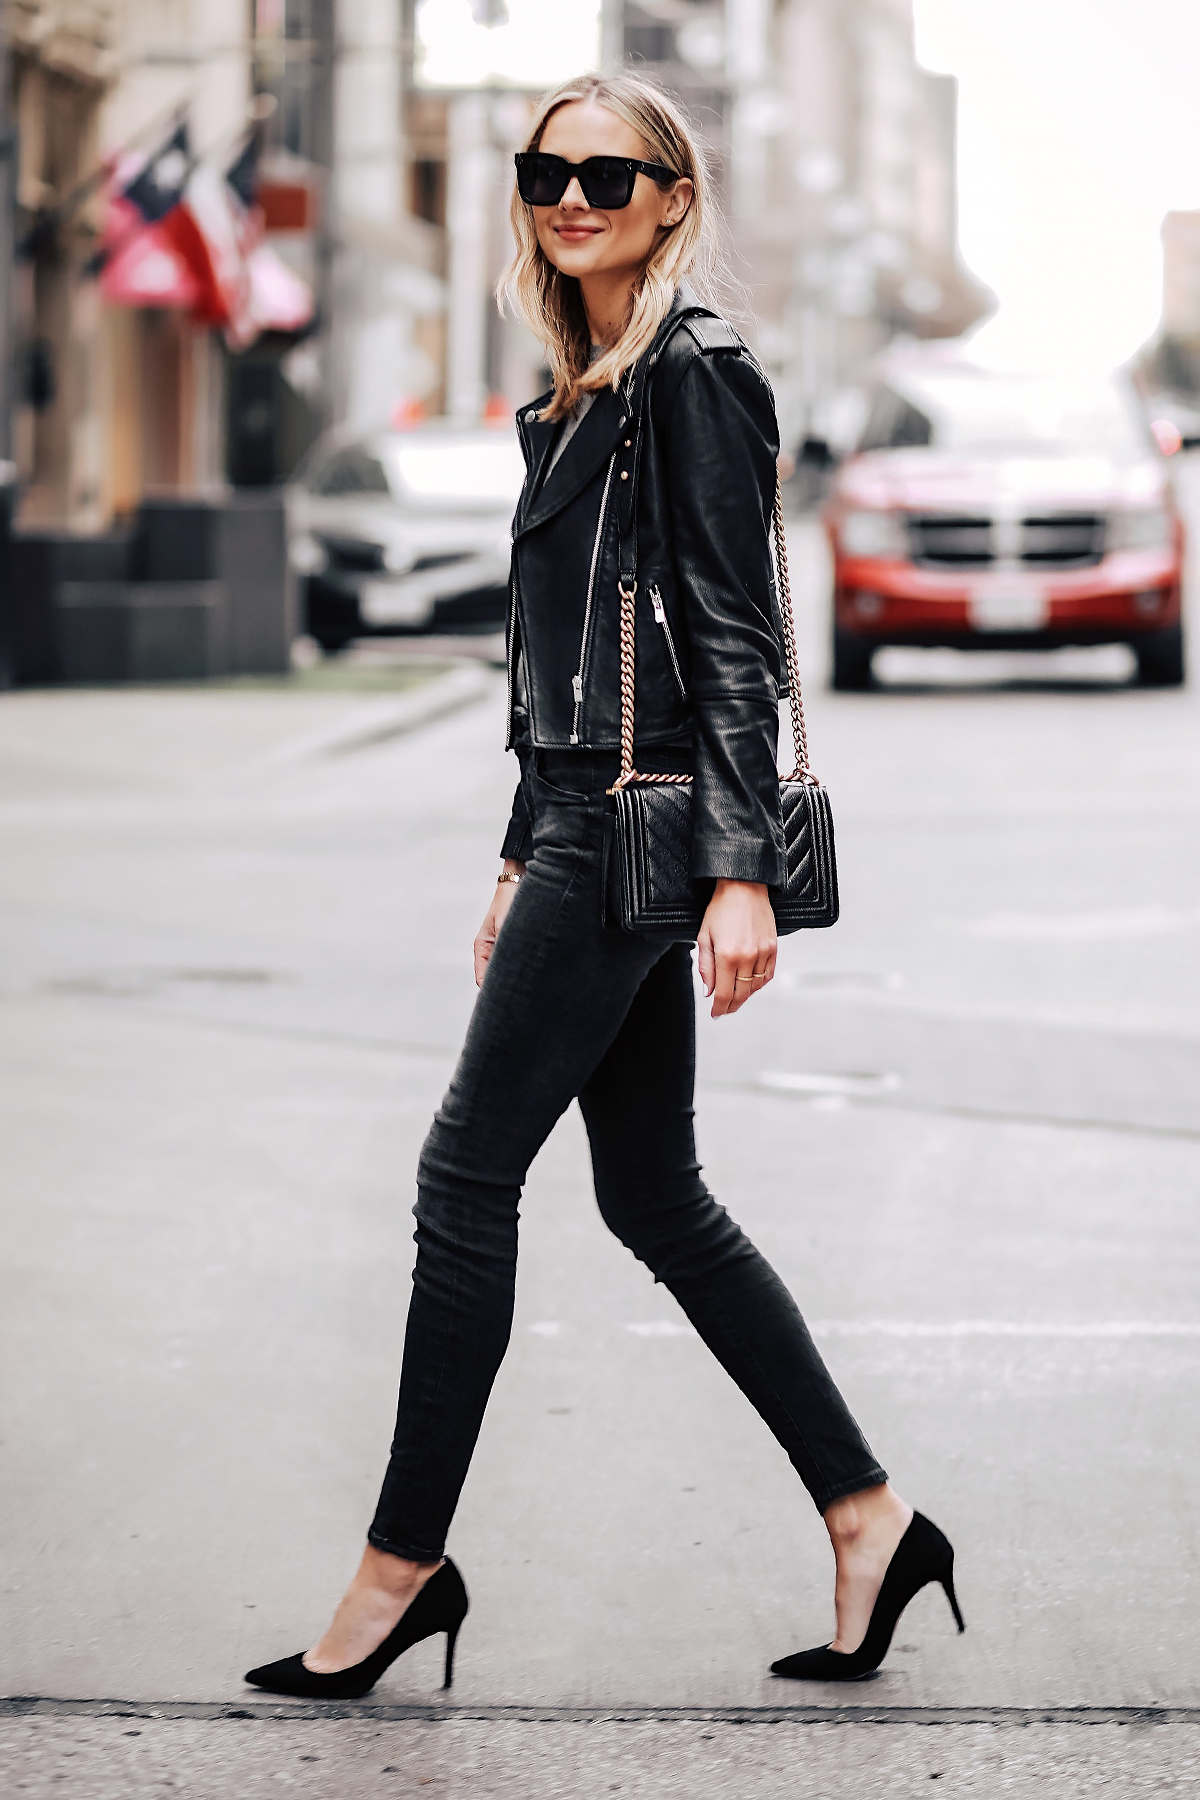 Blonde Woman Wearing Club Monaco Black Leather Jacket Black Skinny Jeans Black Pumps Chanel Black Boy Bag Fashion Jackson San Diego Fashion Blogger Street Style